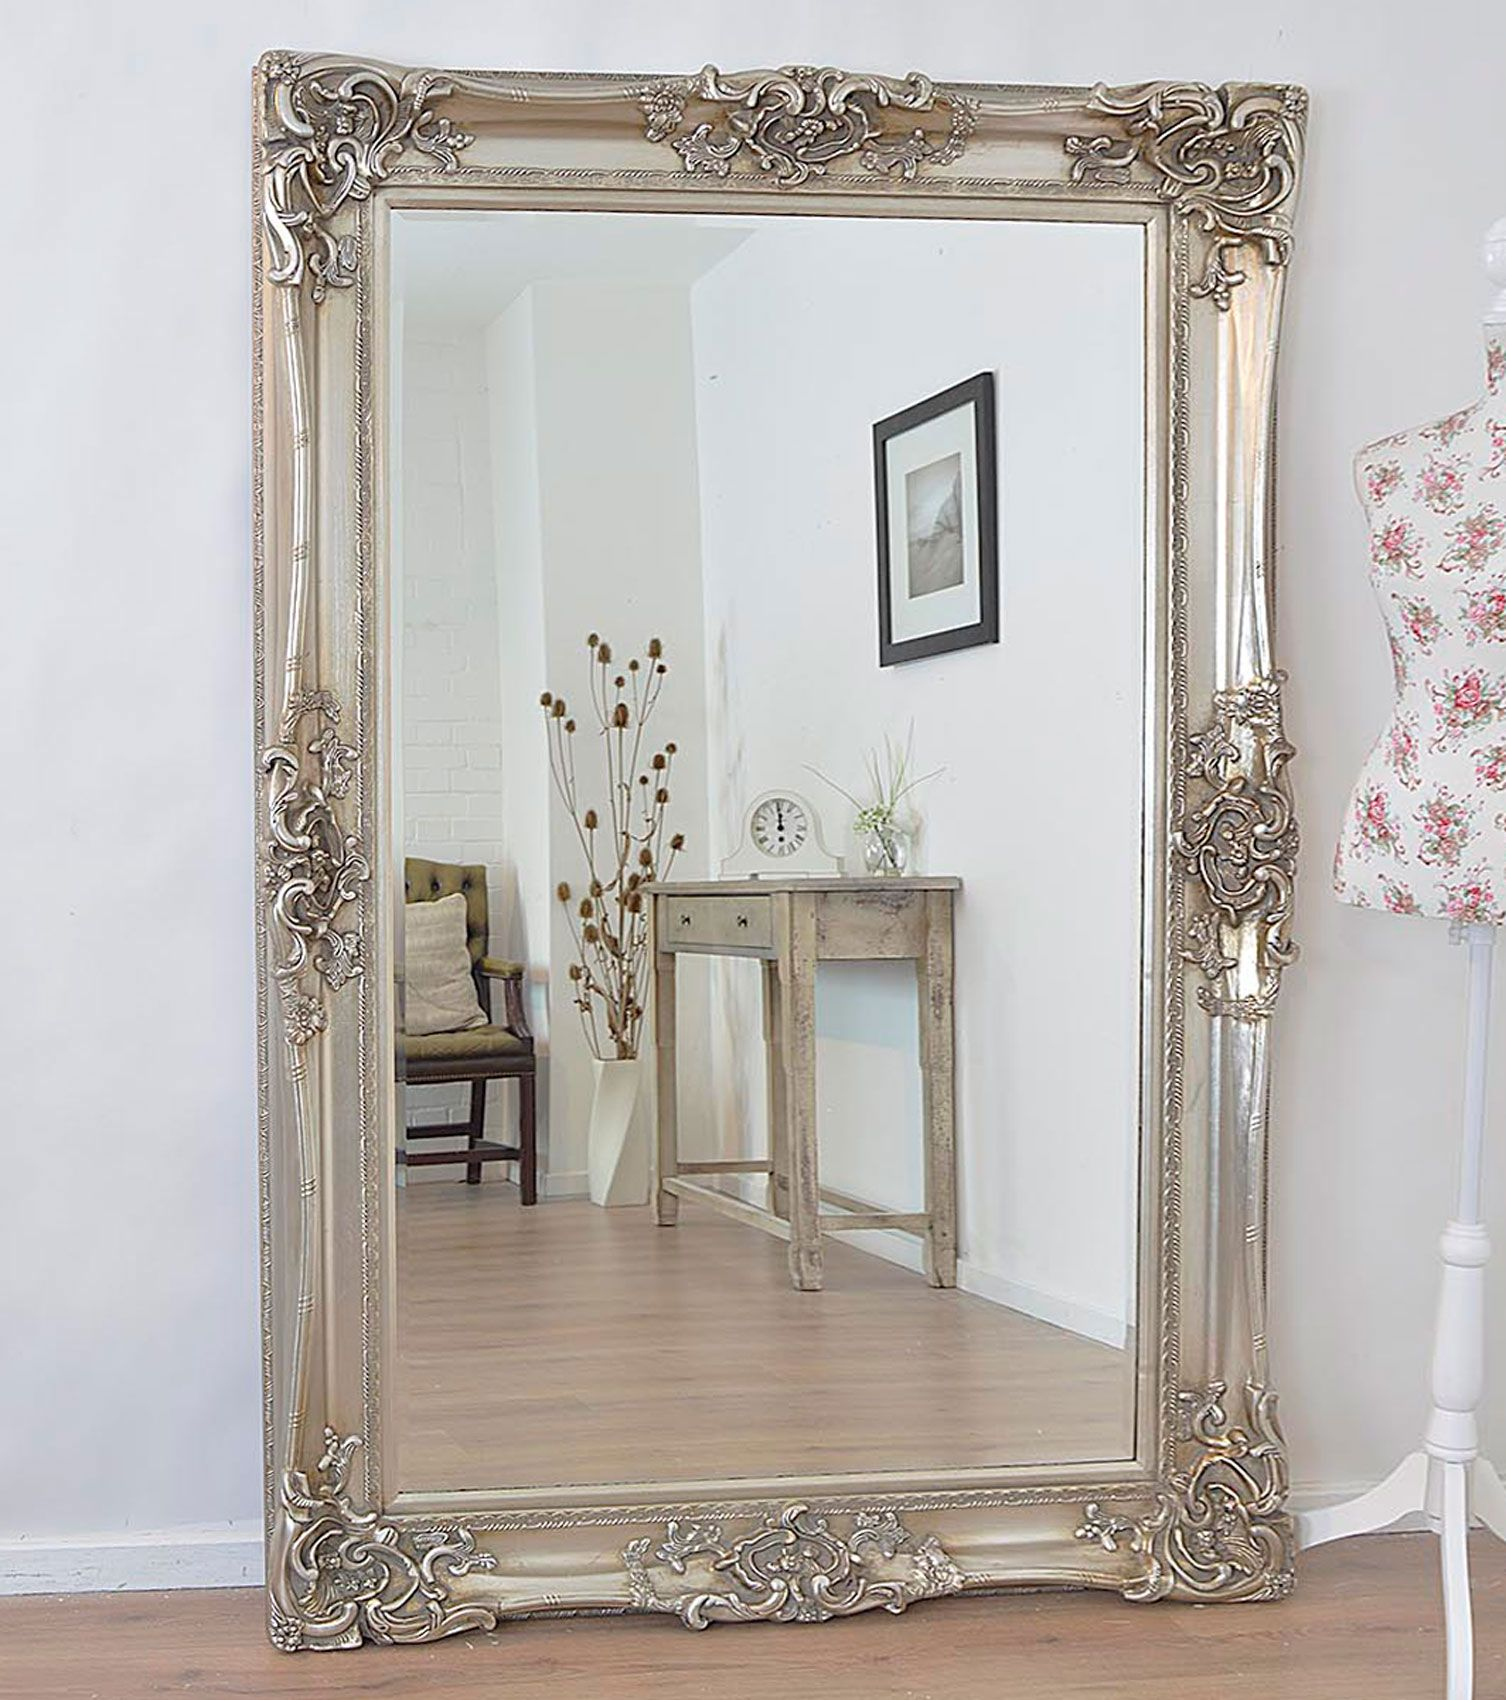 Antique Design Ornate Wall Mirror will make a beautiful ...